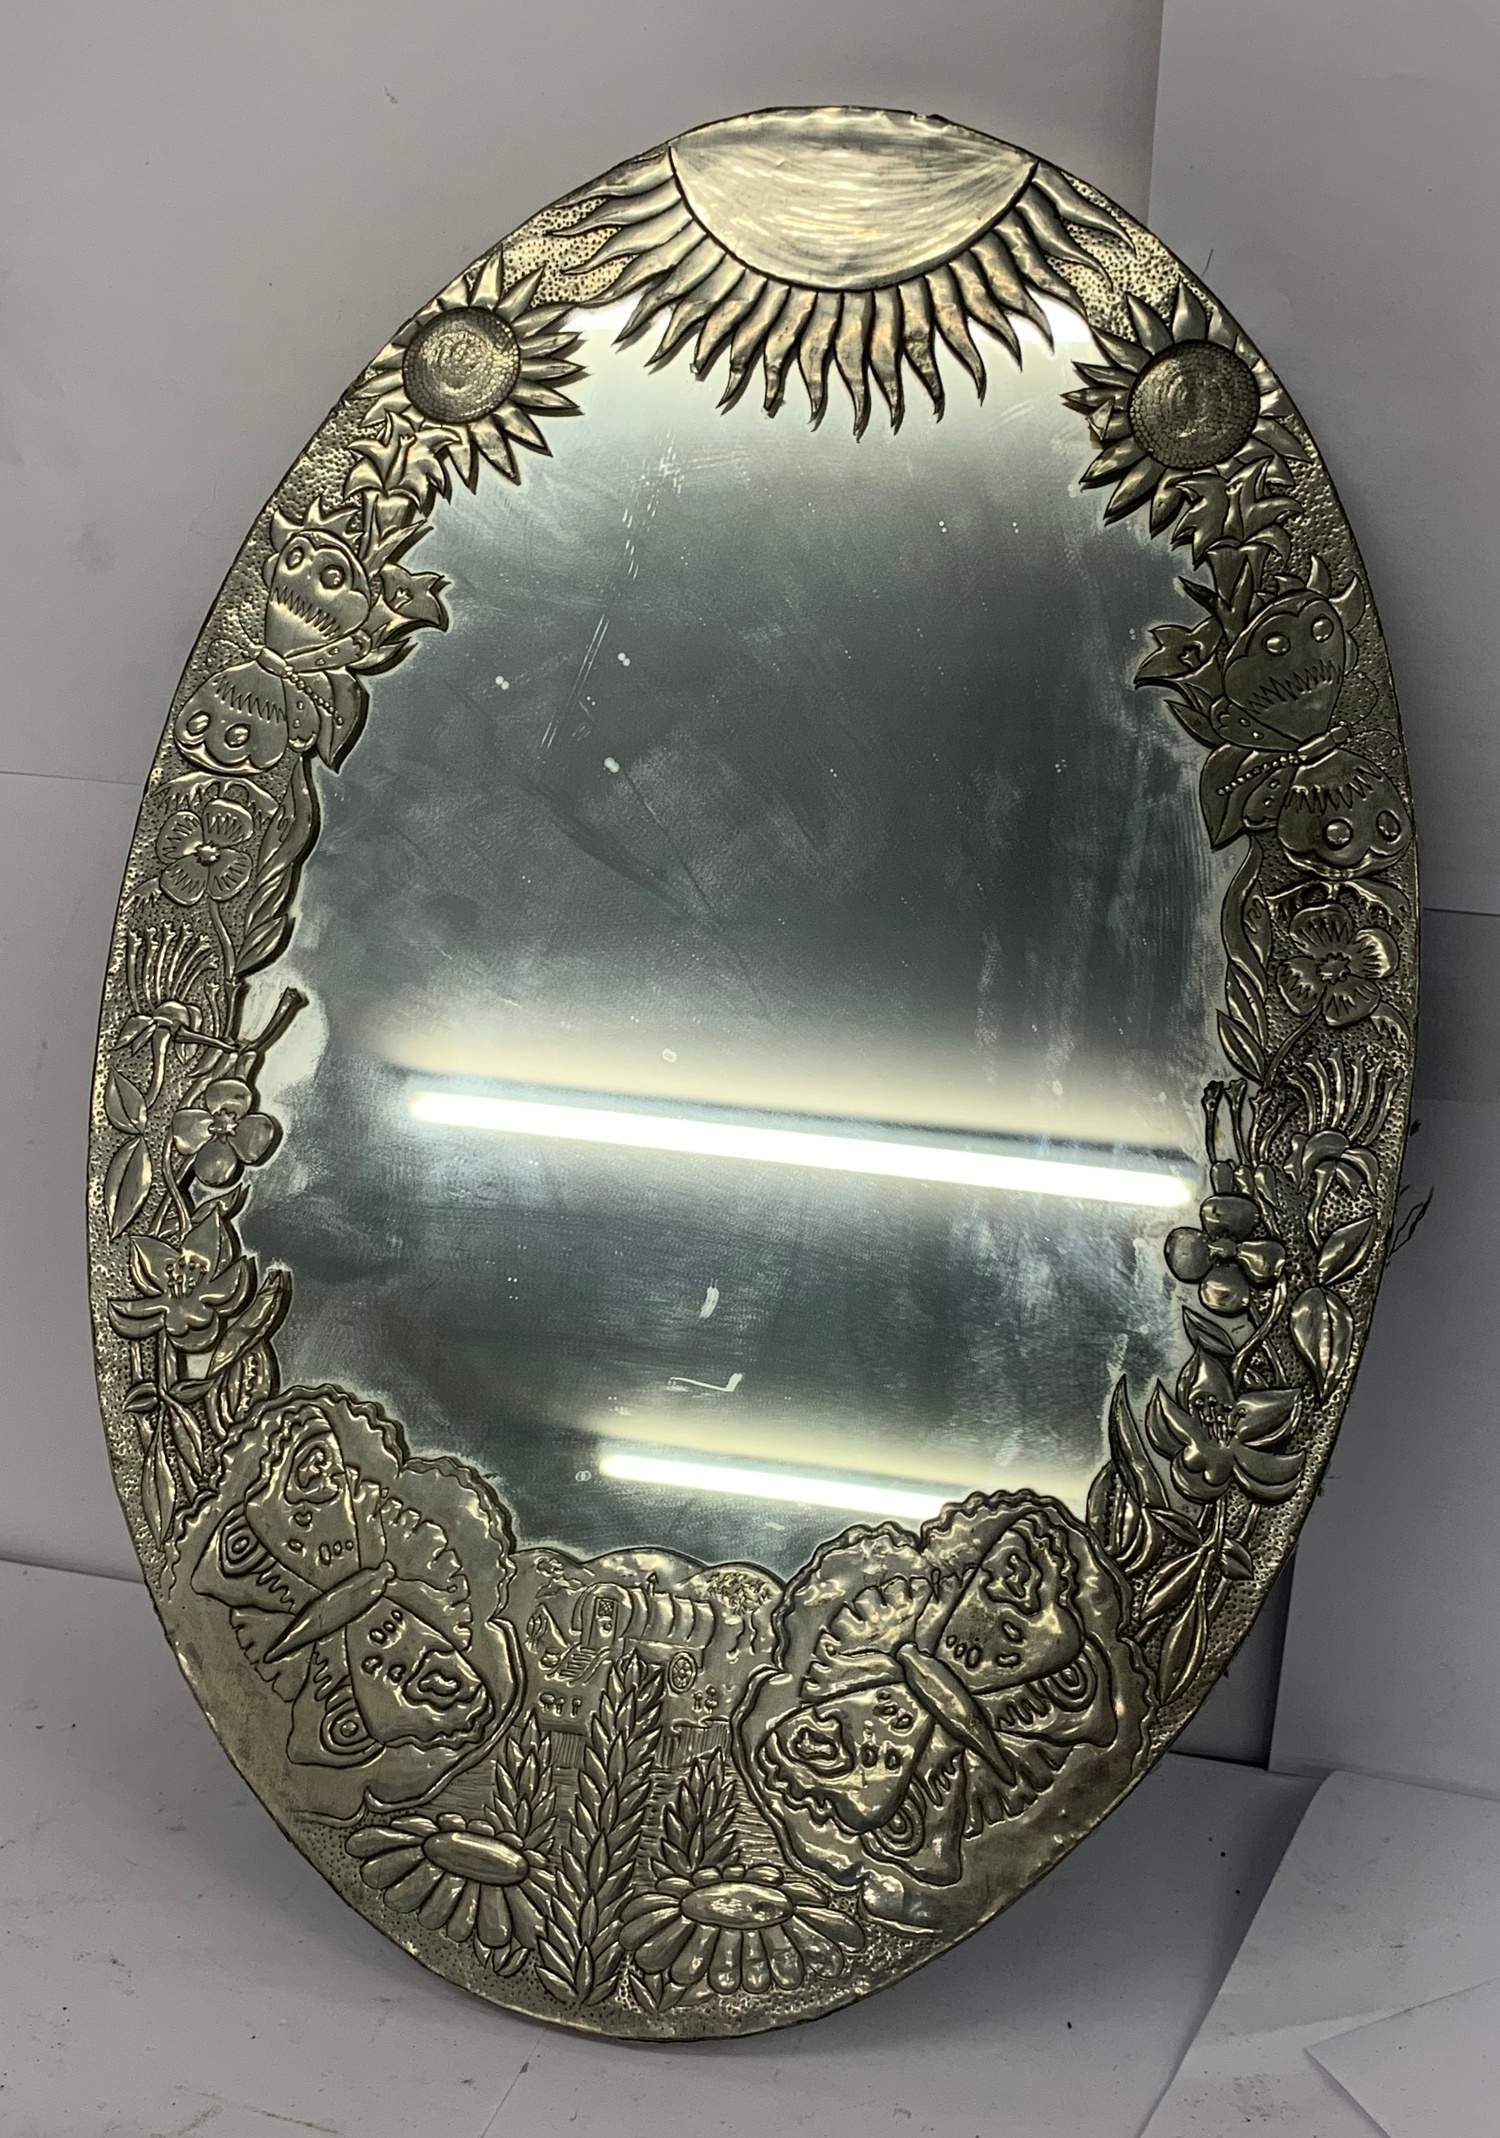 Ornate Metal Wall Mirror Small Damage Which Can Be Seen In The Images Approximate Measurements He